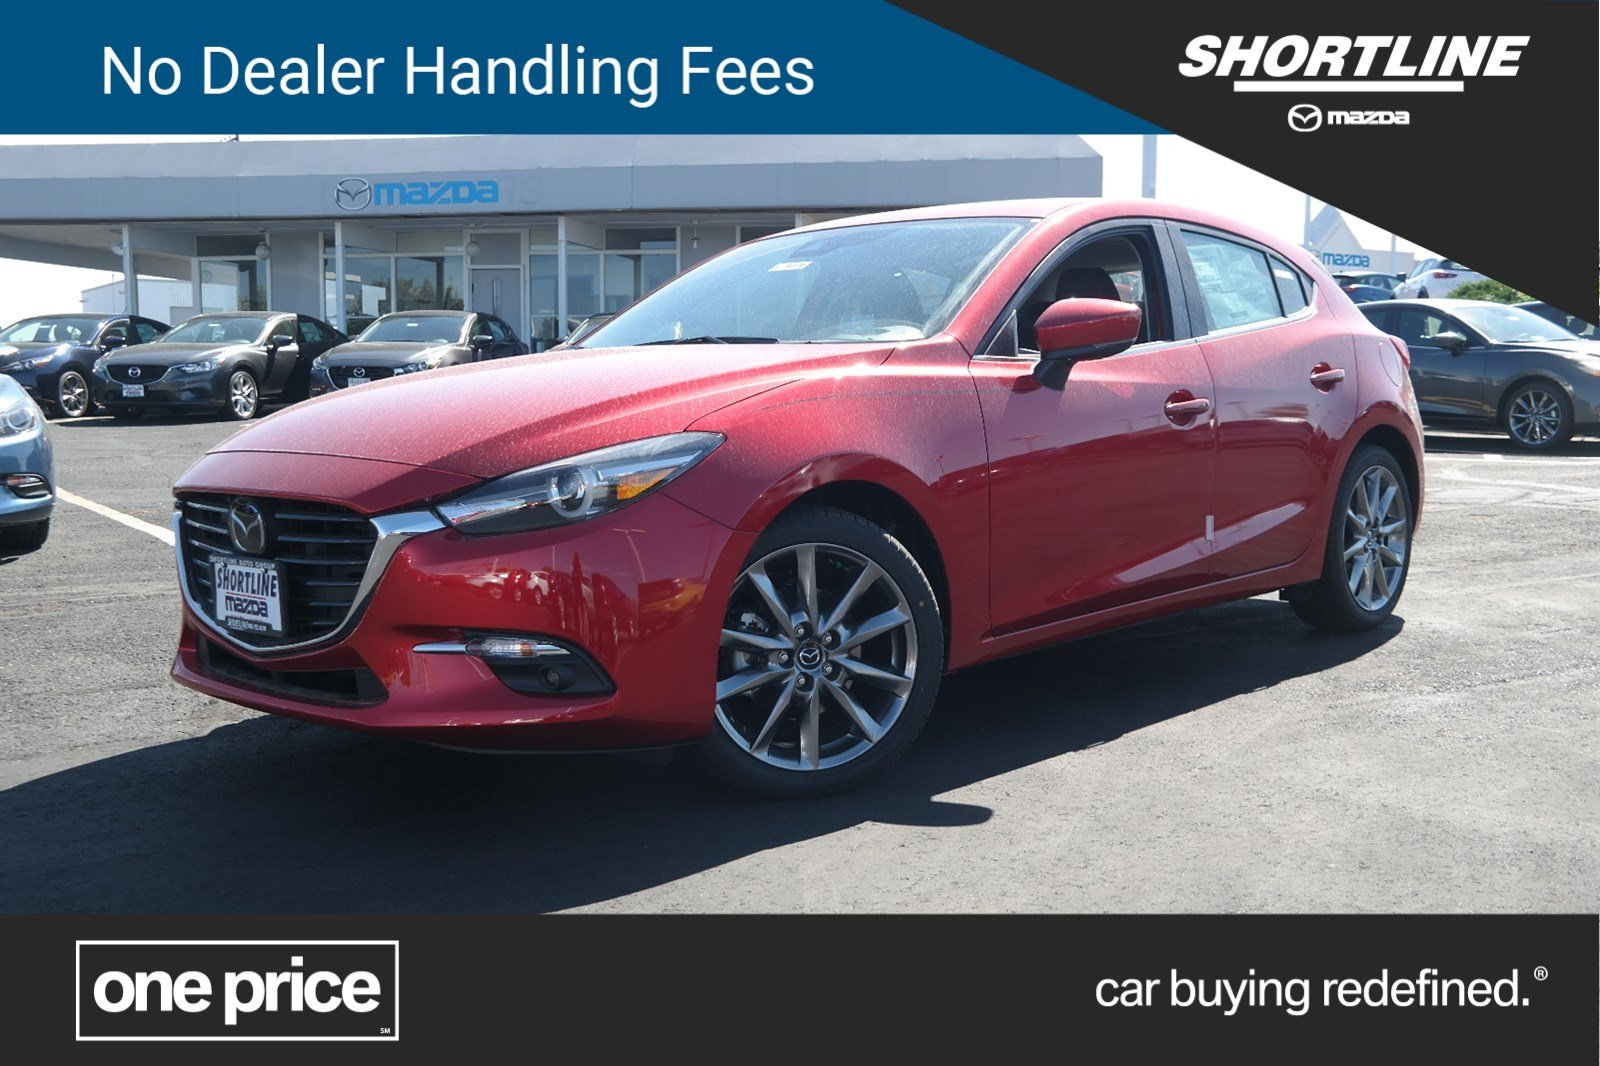 New 2018 Mazda3 5-Door Grand Touring & New 2018 Mazda Mazda3 5-Door Grand Touring Hatchback in Aurora ...